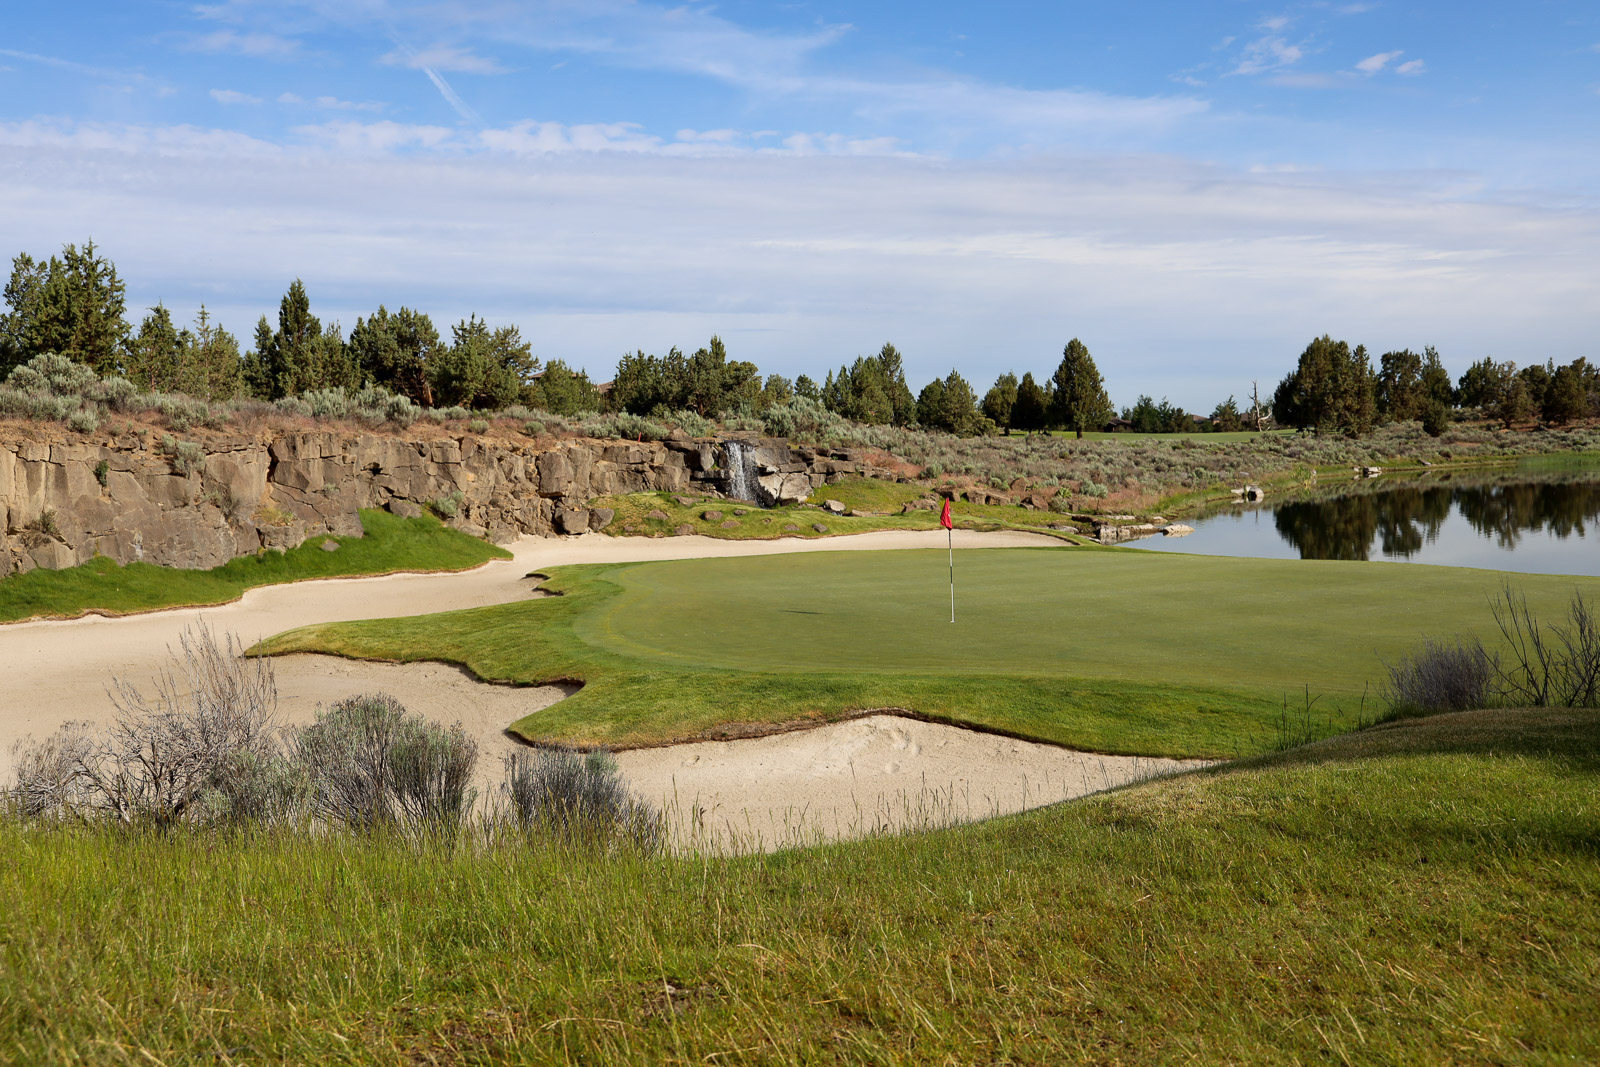 Looking back at the 13th green on the Nicklaus Course at Pronghorn